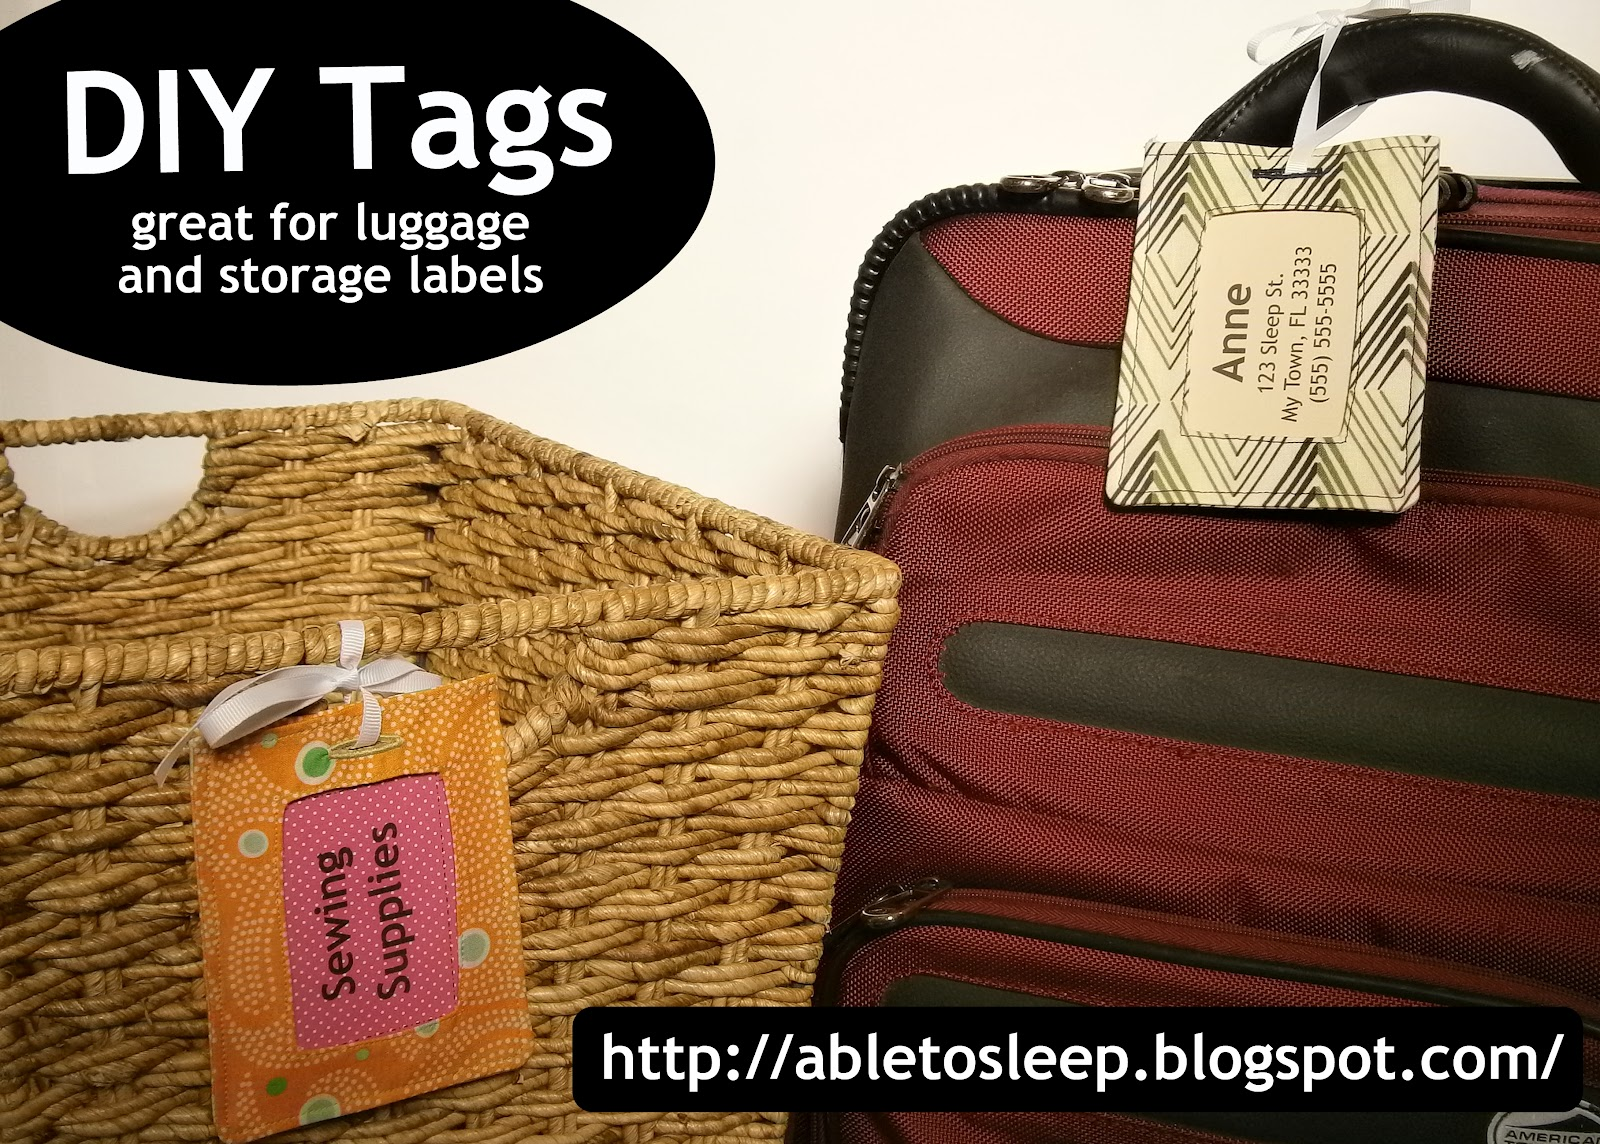 able to sleep  luggage  or decorative  tag tutorial